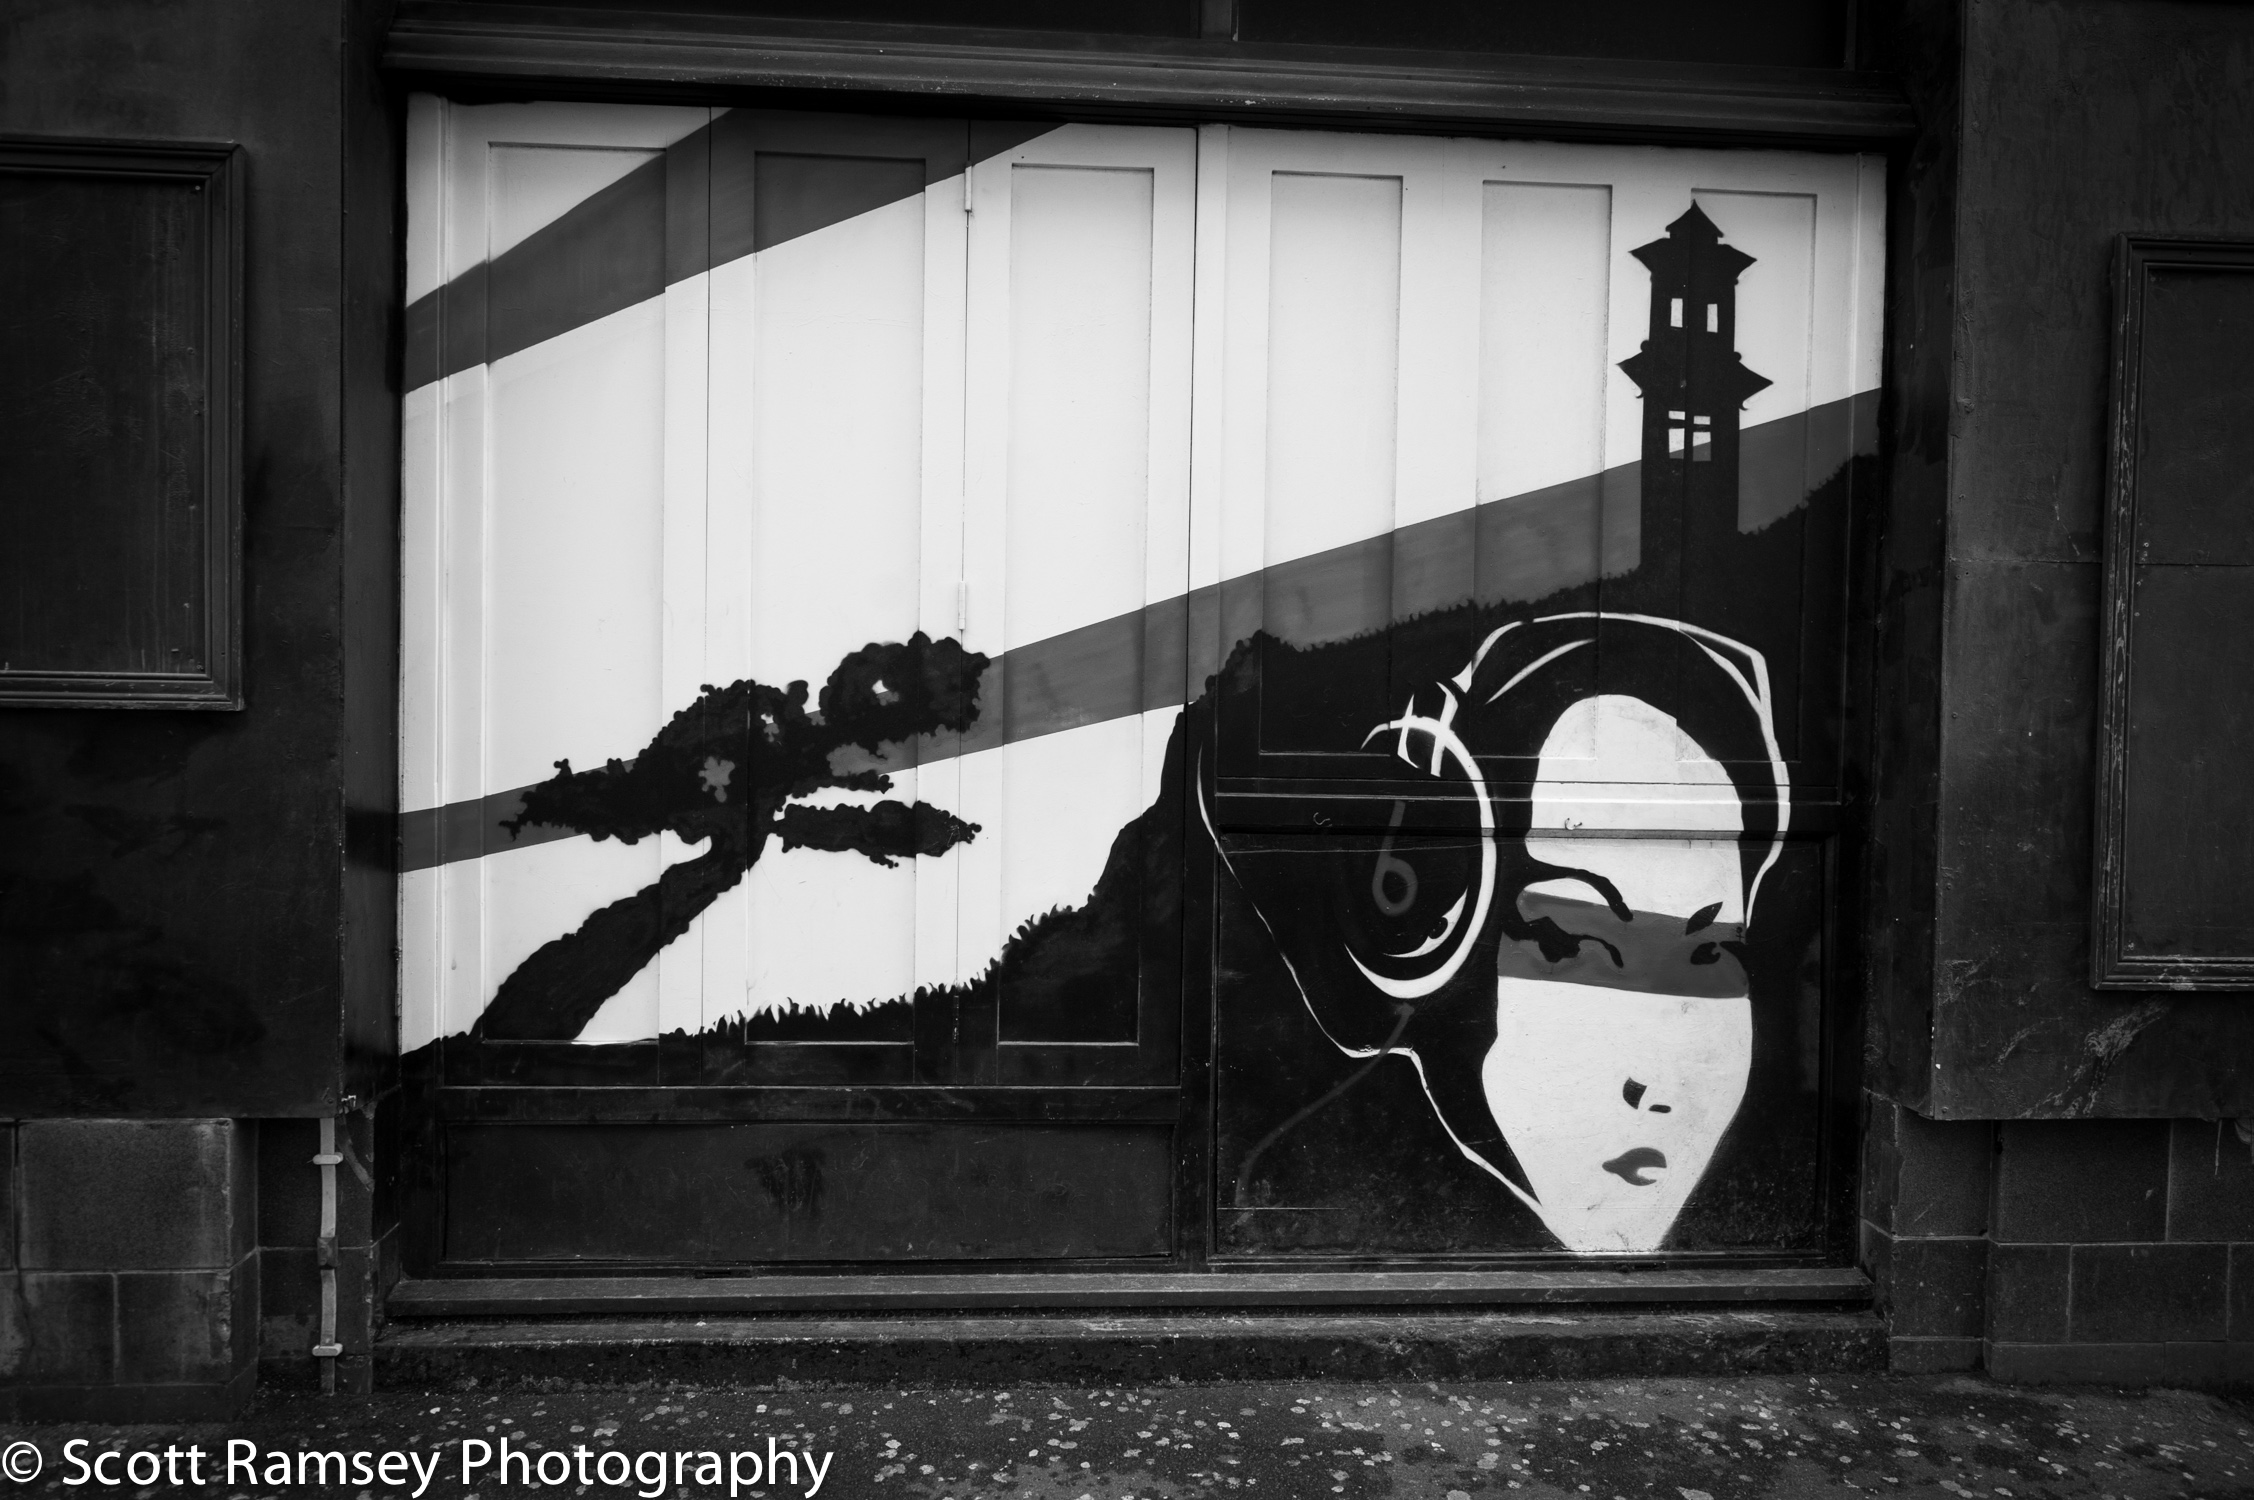 The painting on the wall of a nightclub called Madame Geisha in East Street, Brighton, East Sussex, UK.